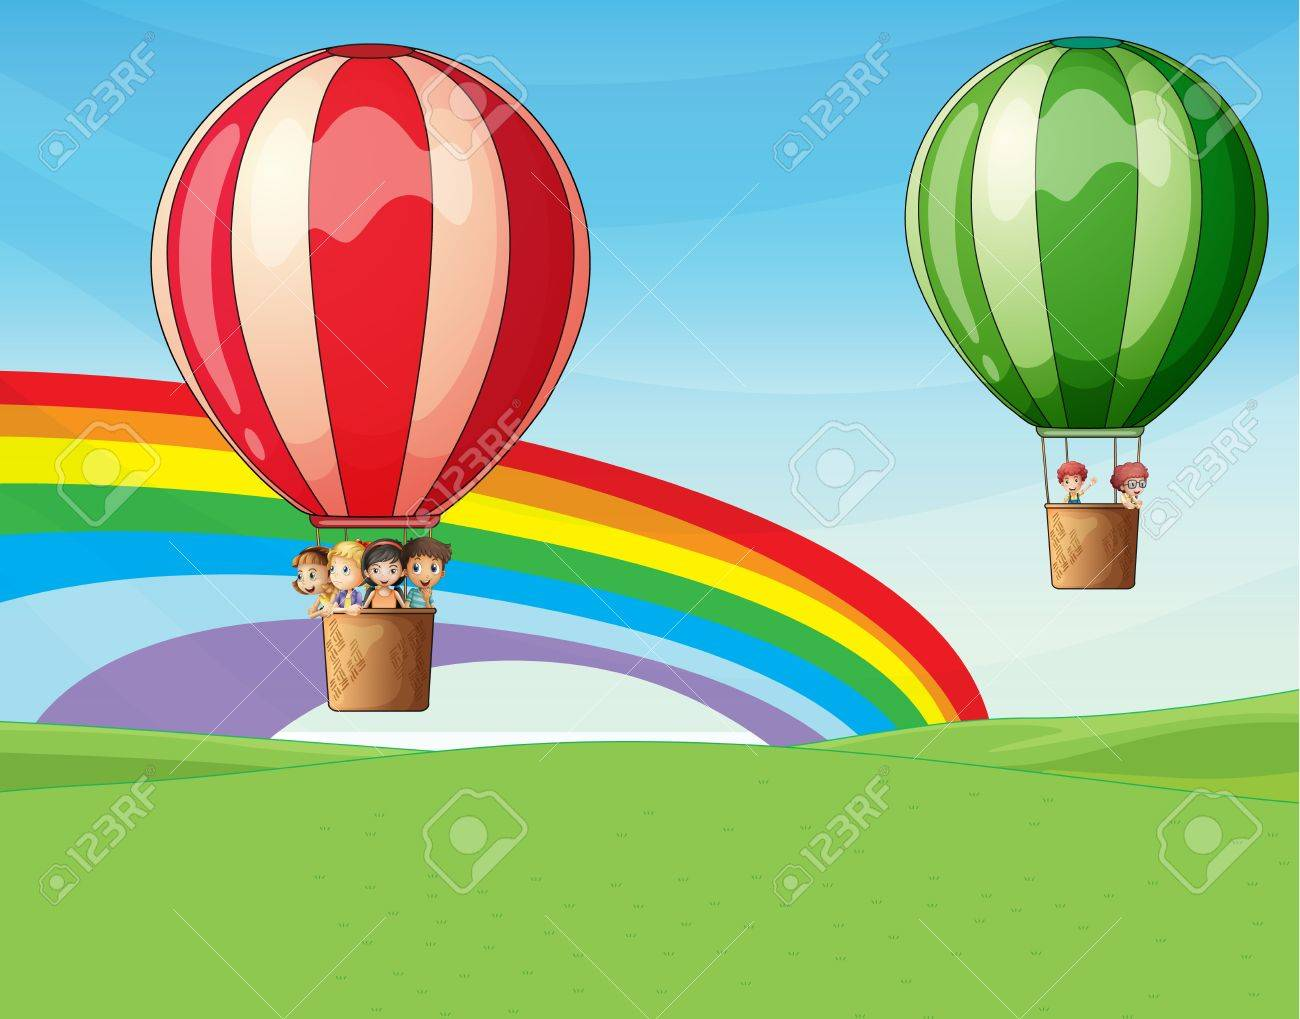 Illustration of two air ballons flying with kids Stock Vector - 17339107